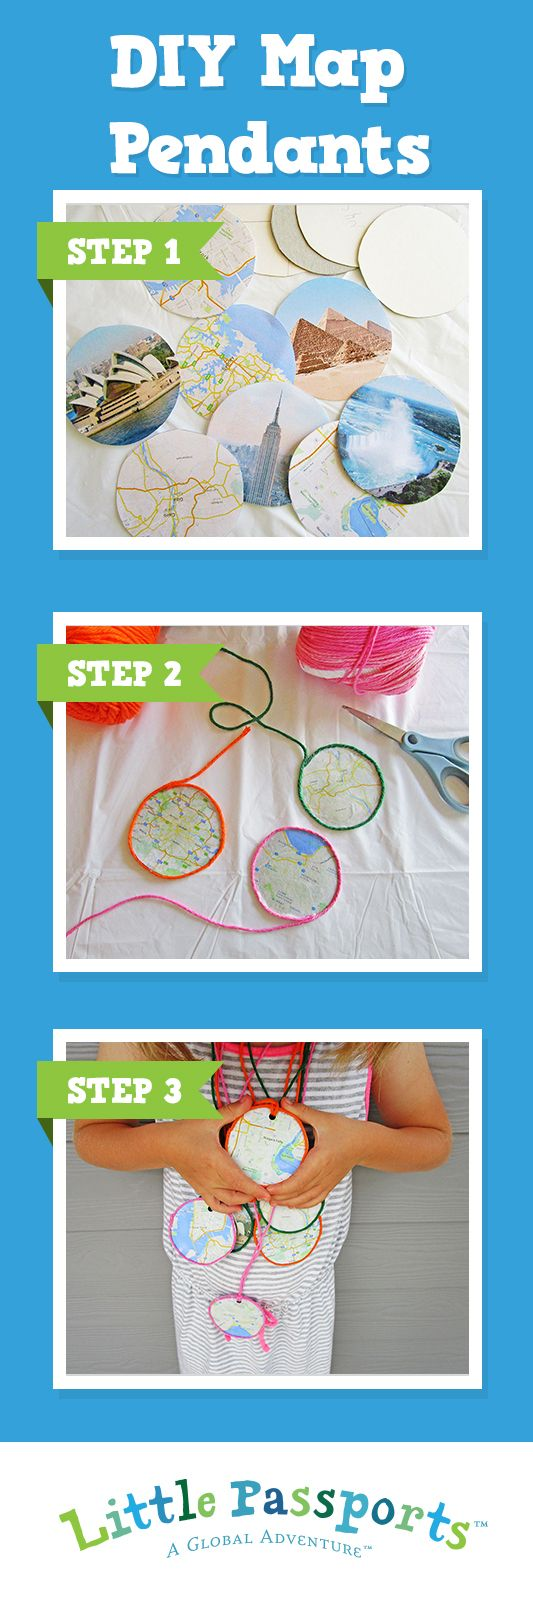 Try this fun map craft with the kids to create a lasting memory of your family's travels. Your little one can either wear the pendants or give them out as gifts!